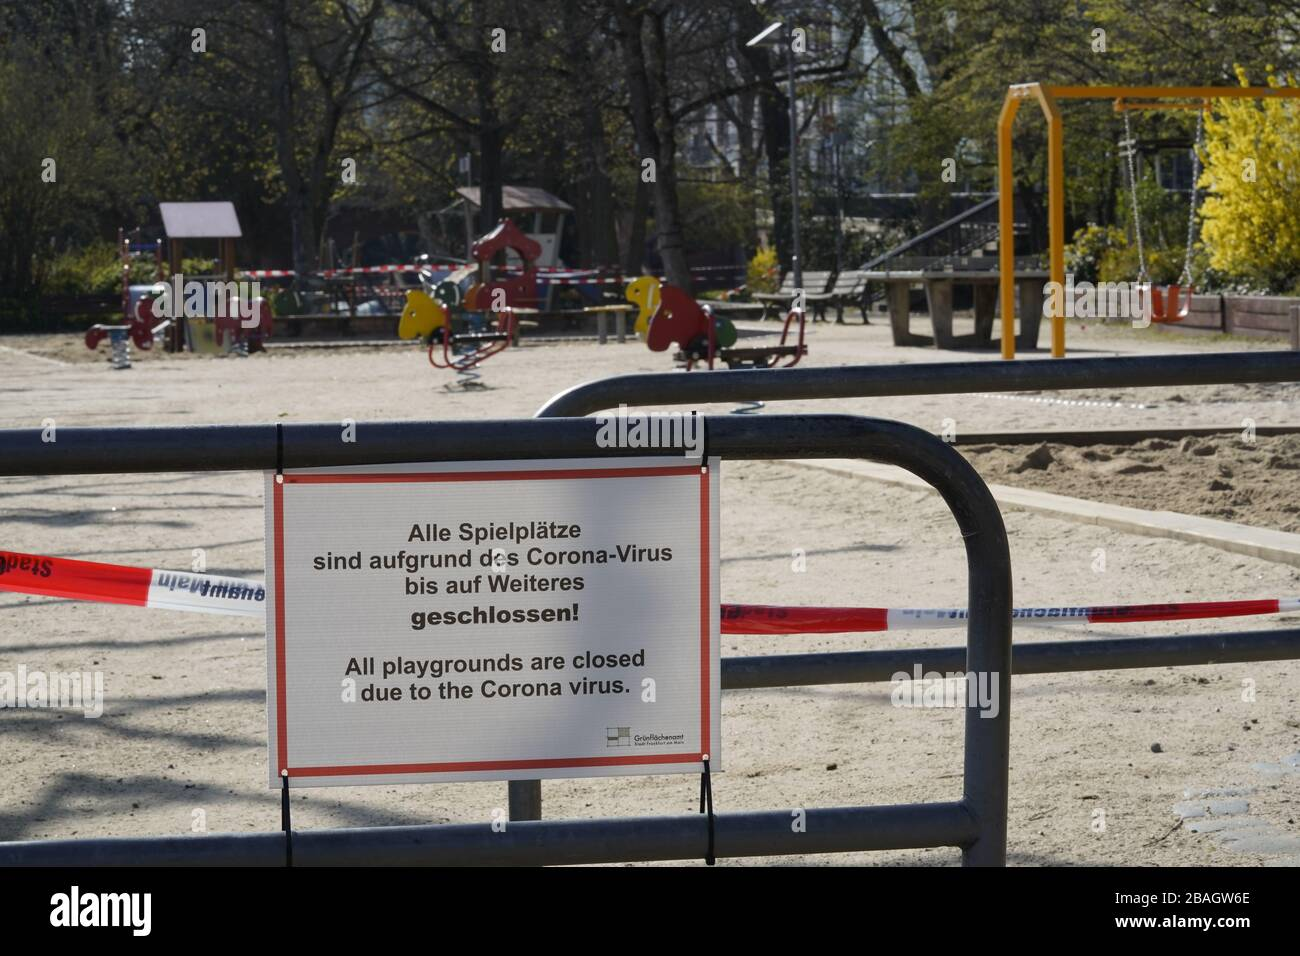 Closed Playgrounds in Frankfurt Germany due to Covid-19 Stock Photo